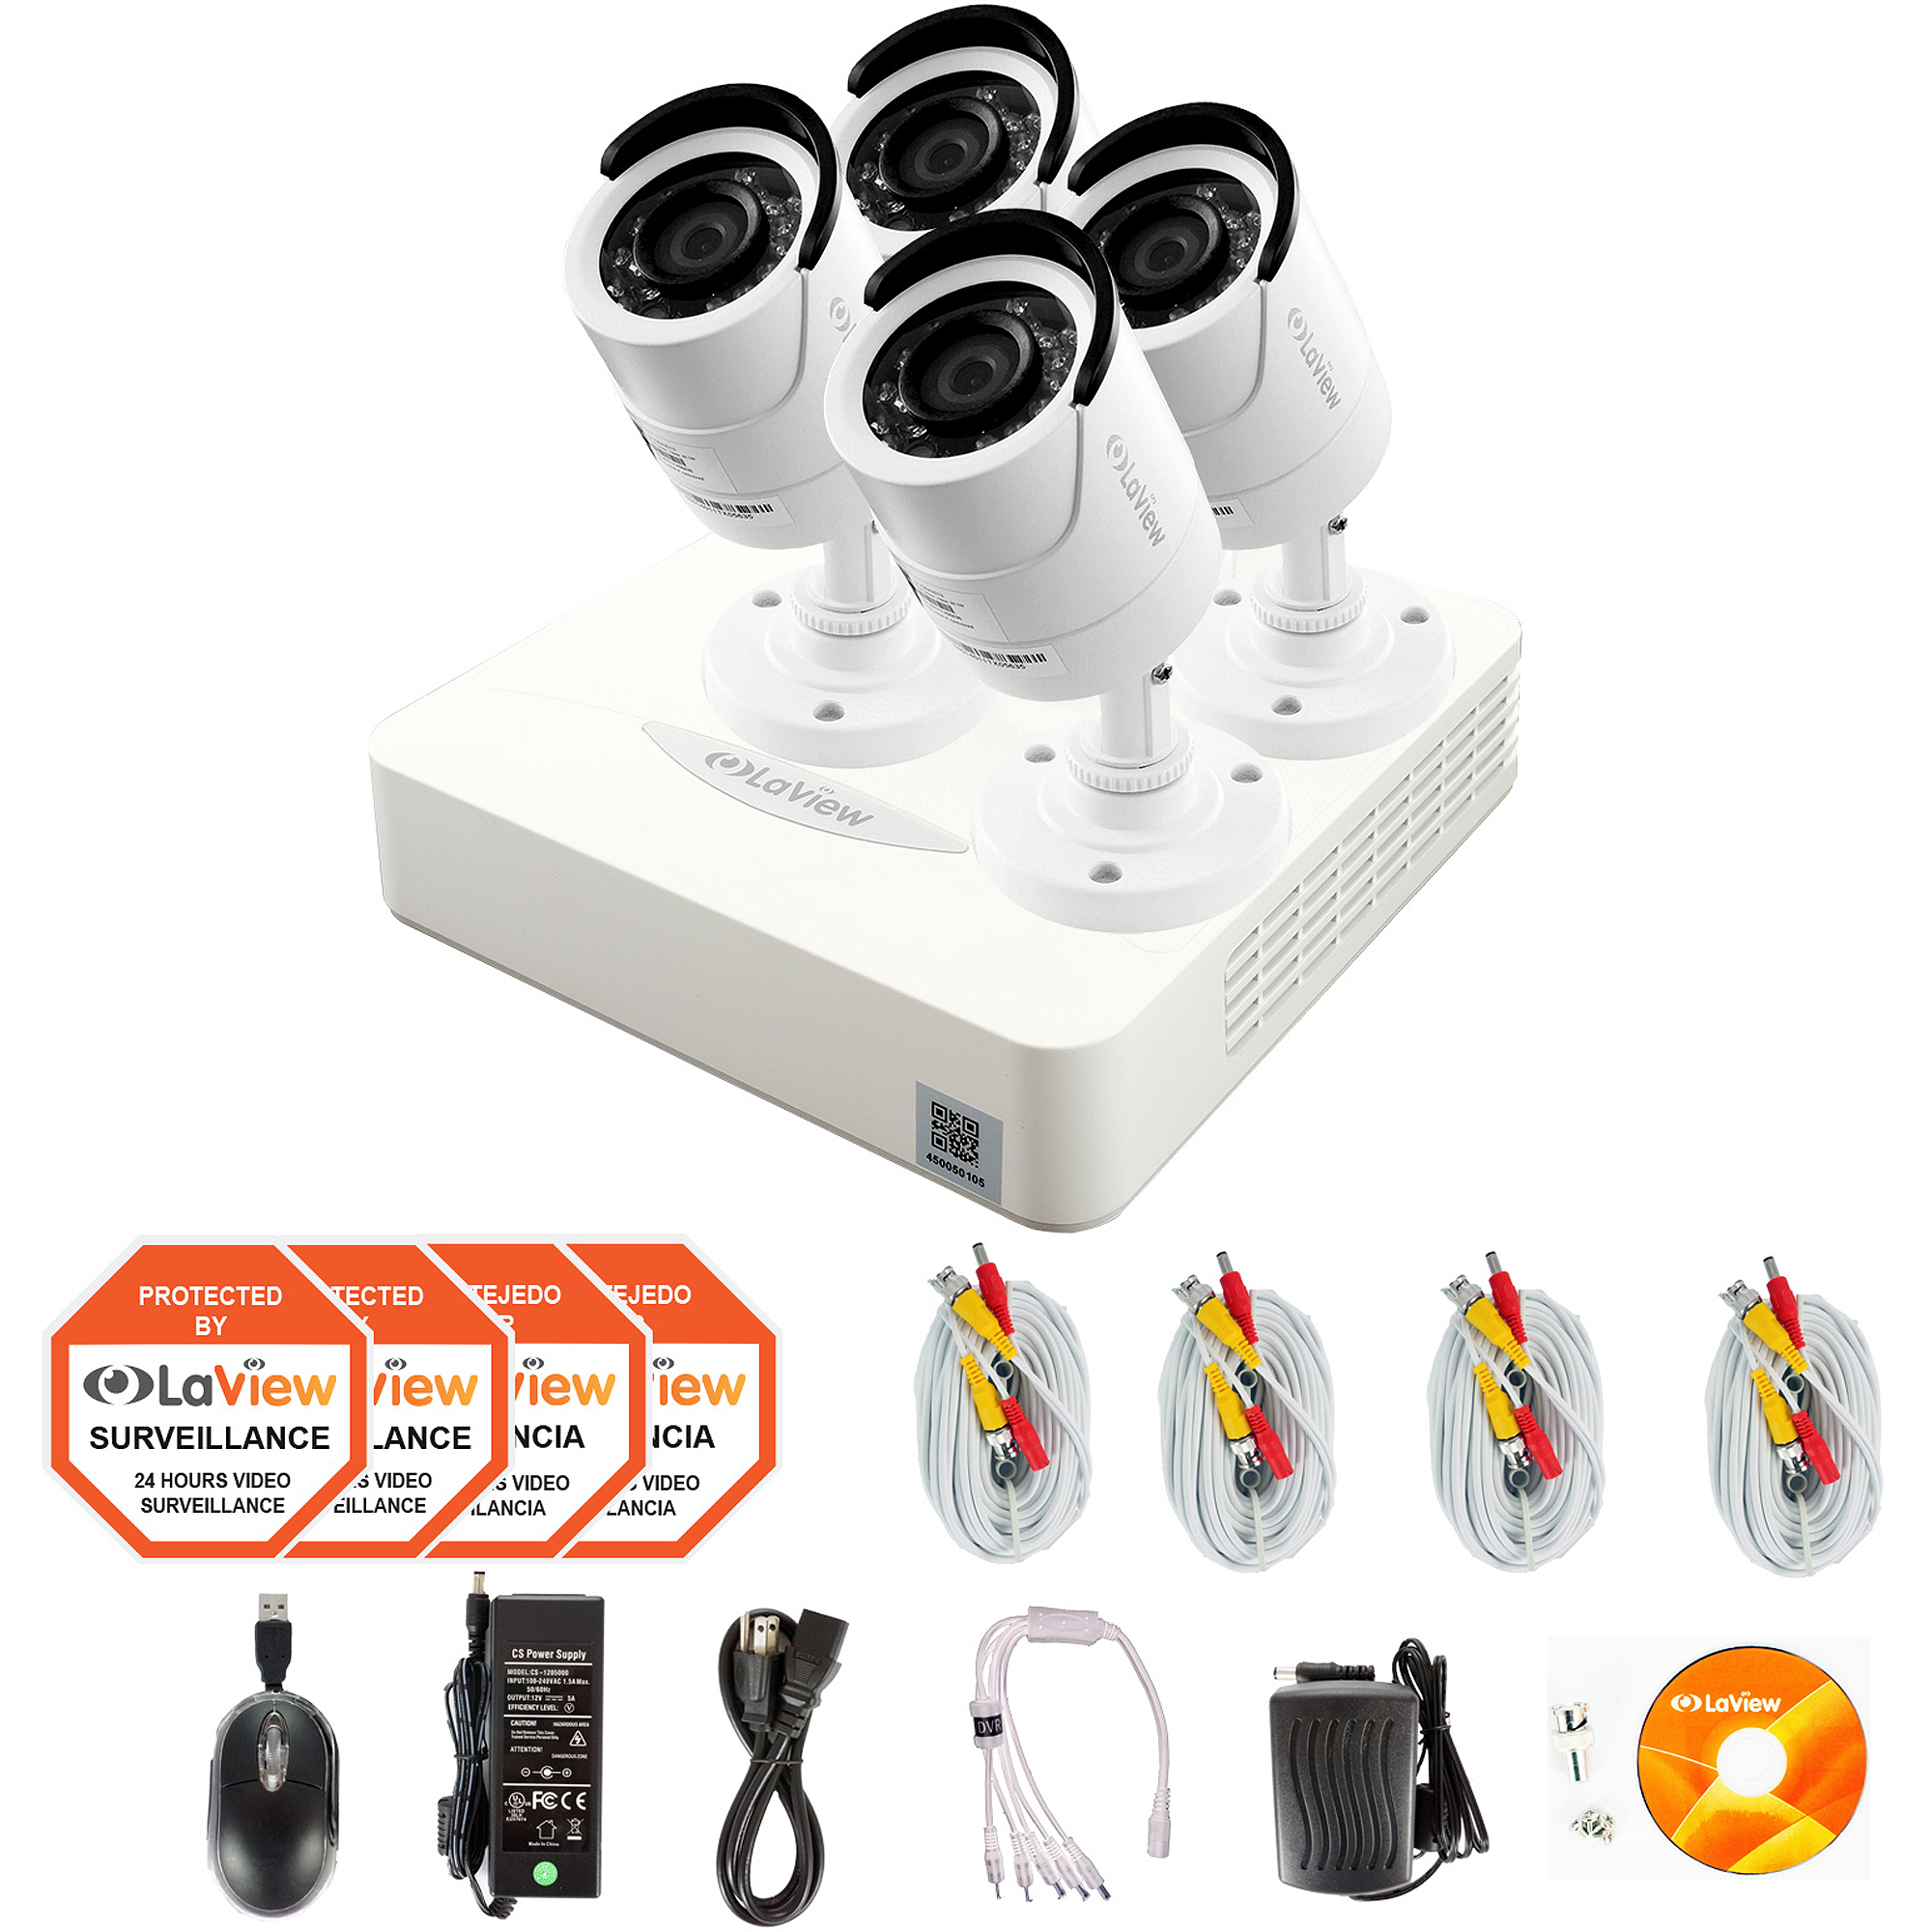 LaView 4 Cameras 4CH Security System 960H DVR with 1TB storage HDMI and 1000TVL HD Security Cameras Surveillance Kit